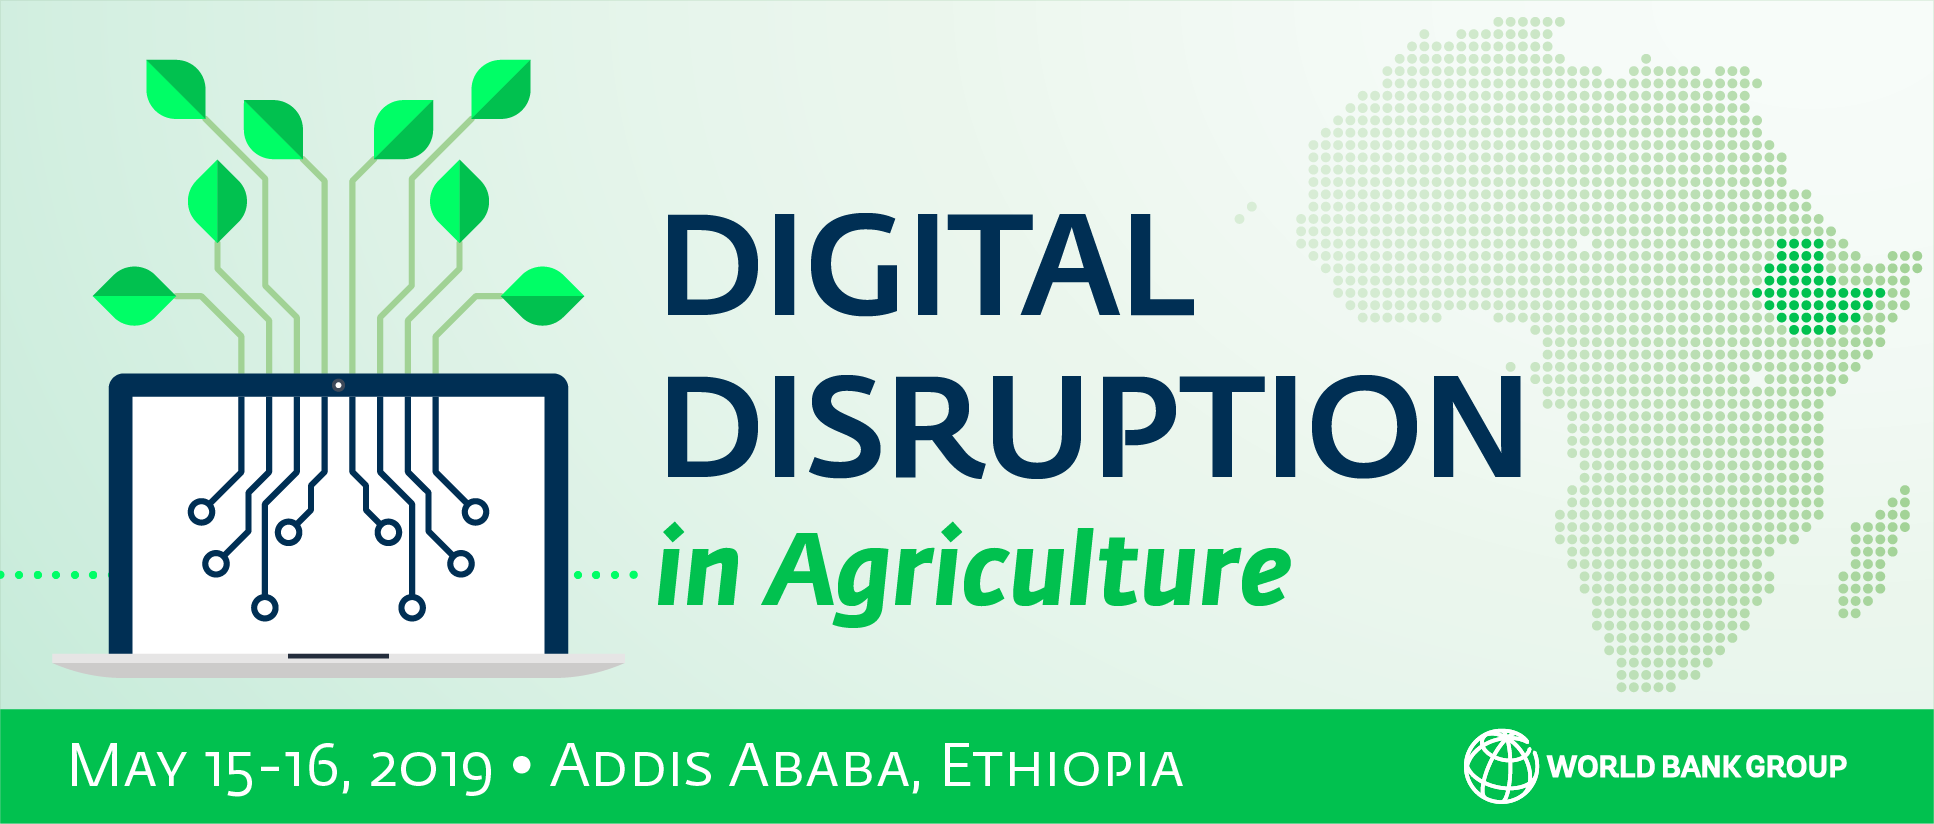 Digital Disruption in Agriculture Forum